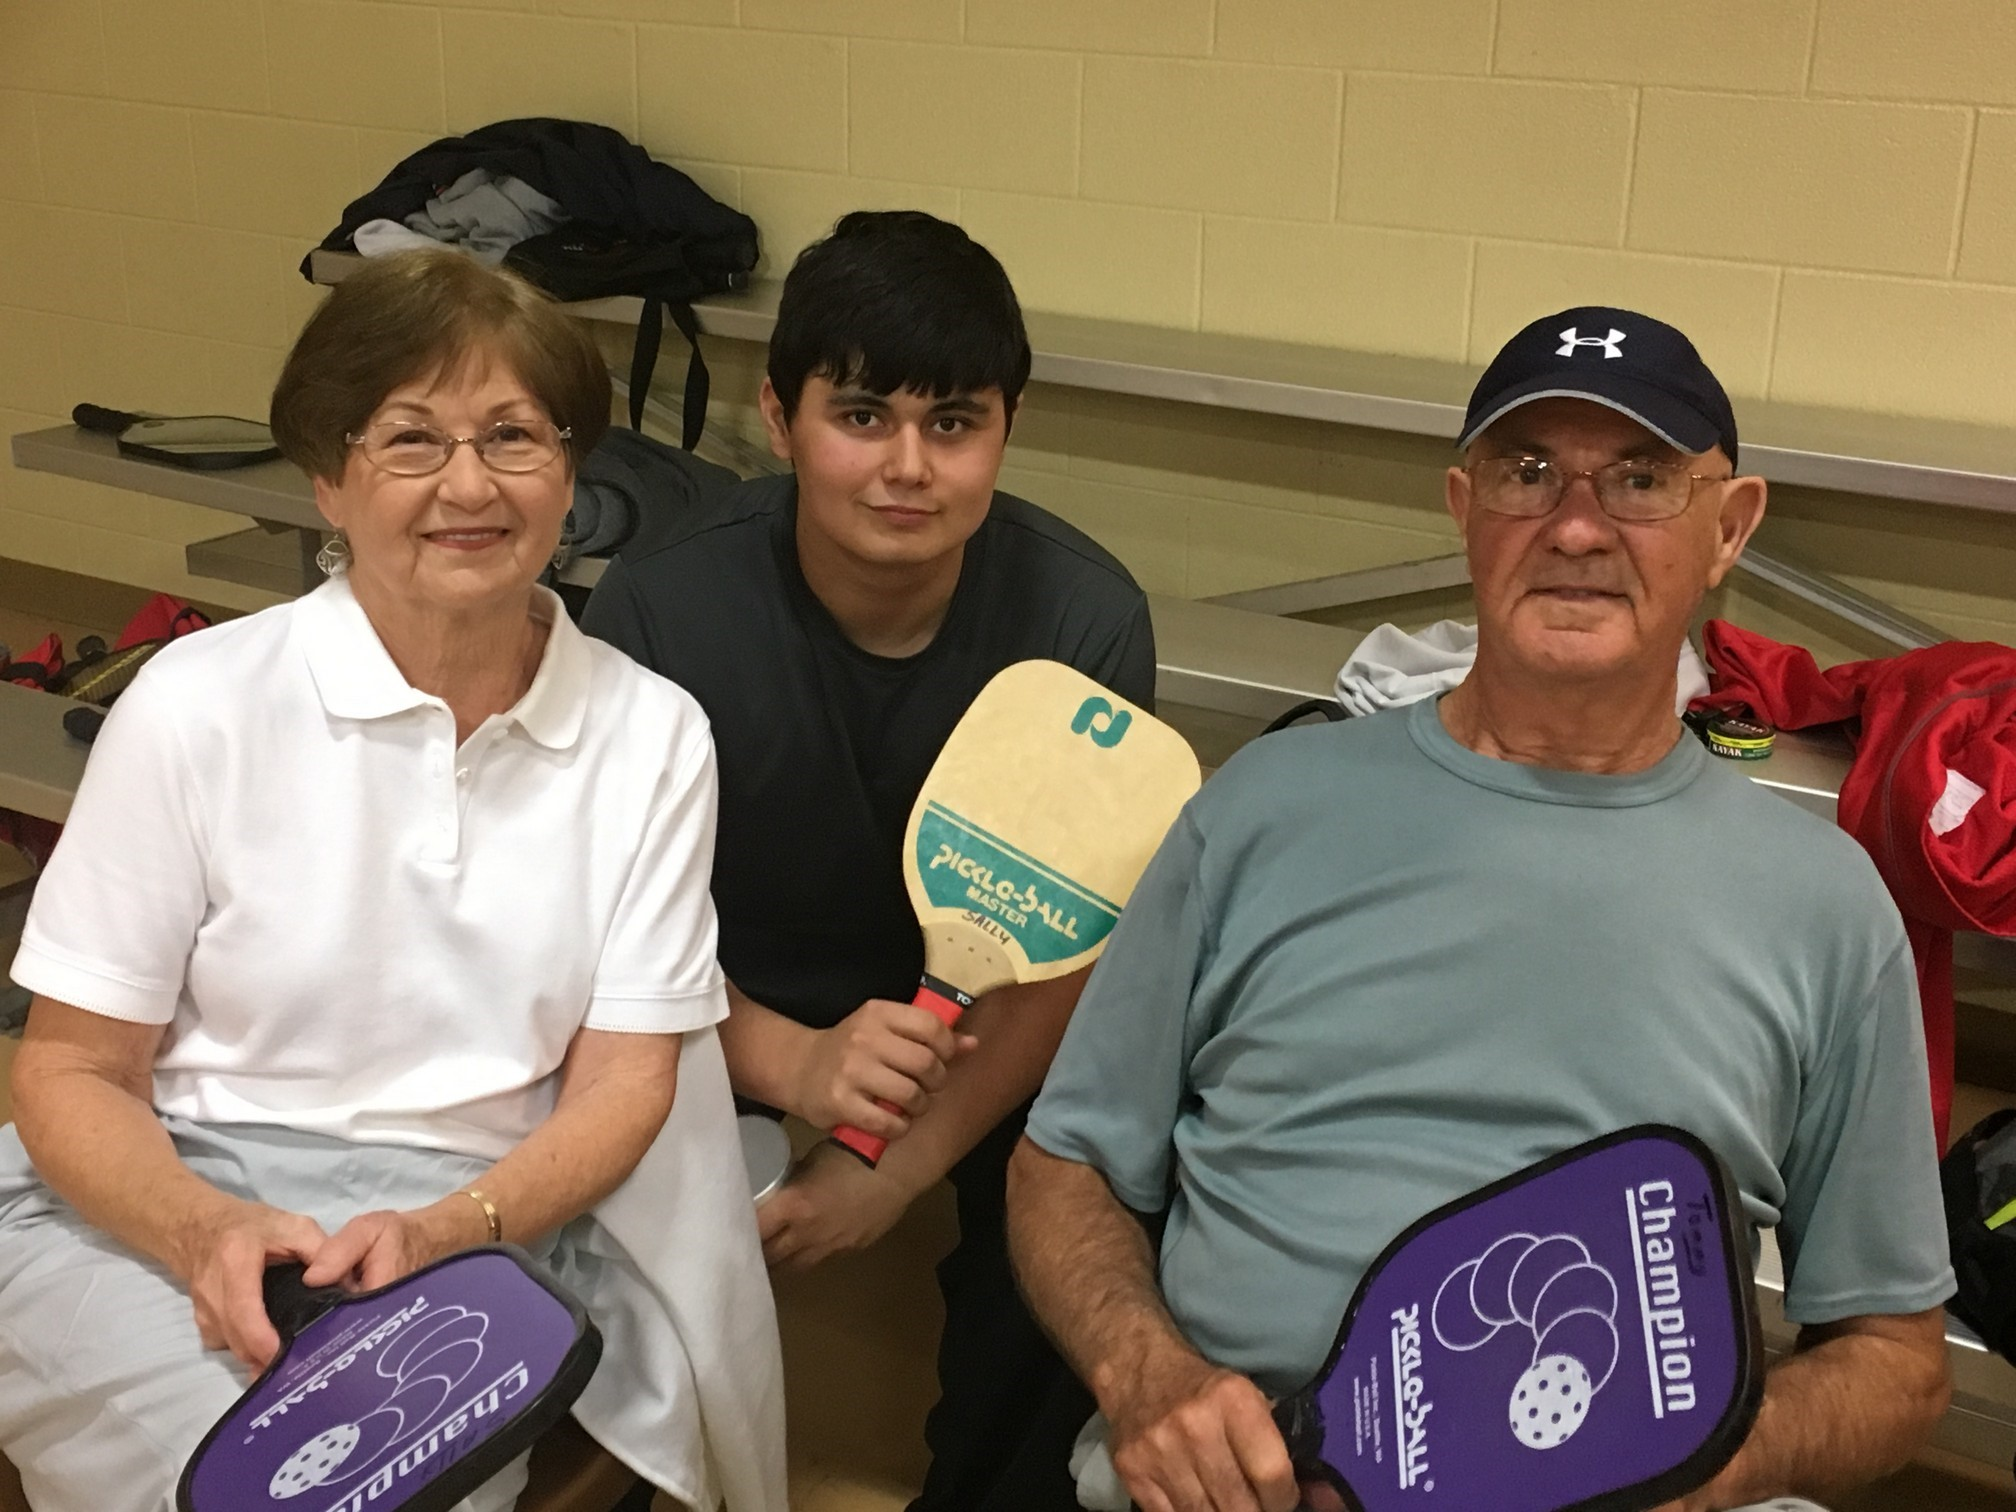 Grandparents and grandson playing pickleball in trussville, birmingham pickleball, pickleball, family pickleball, southside baptist church, southside, alabama